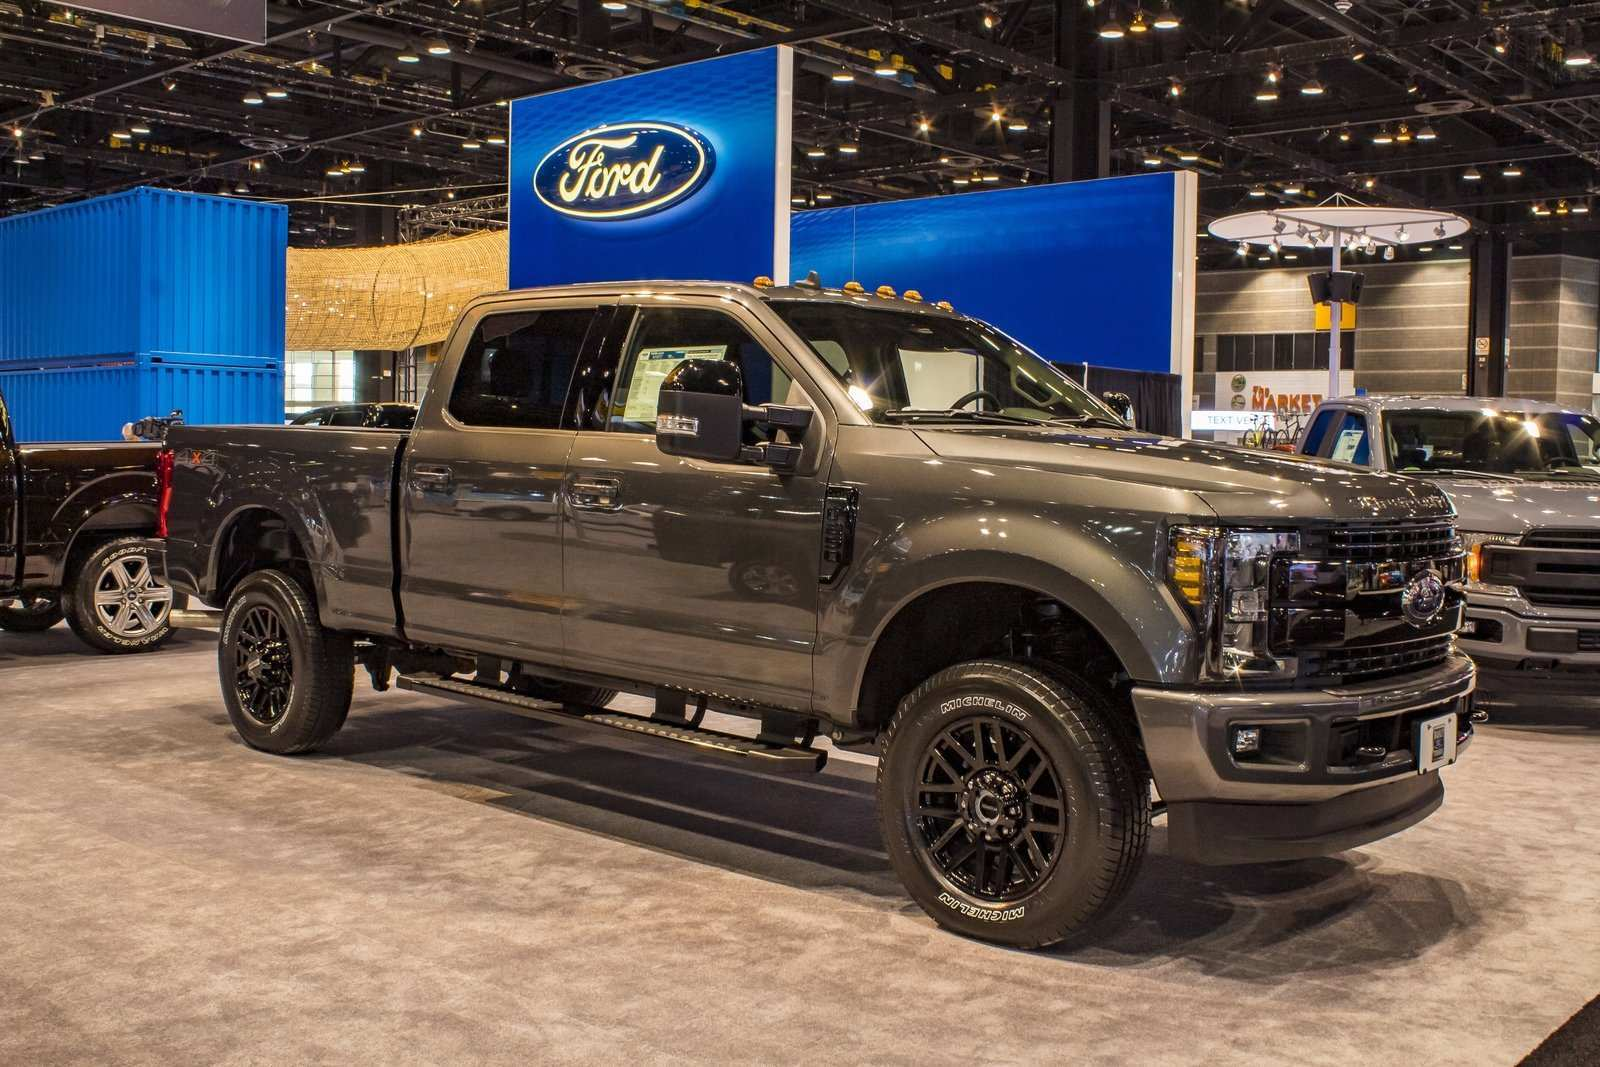 37 All New Ford Dually 2020 Price and Review with Ford Dually 2020